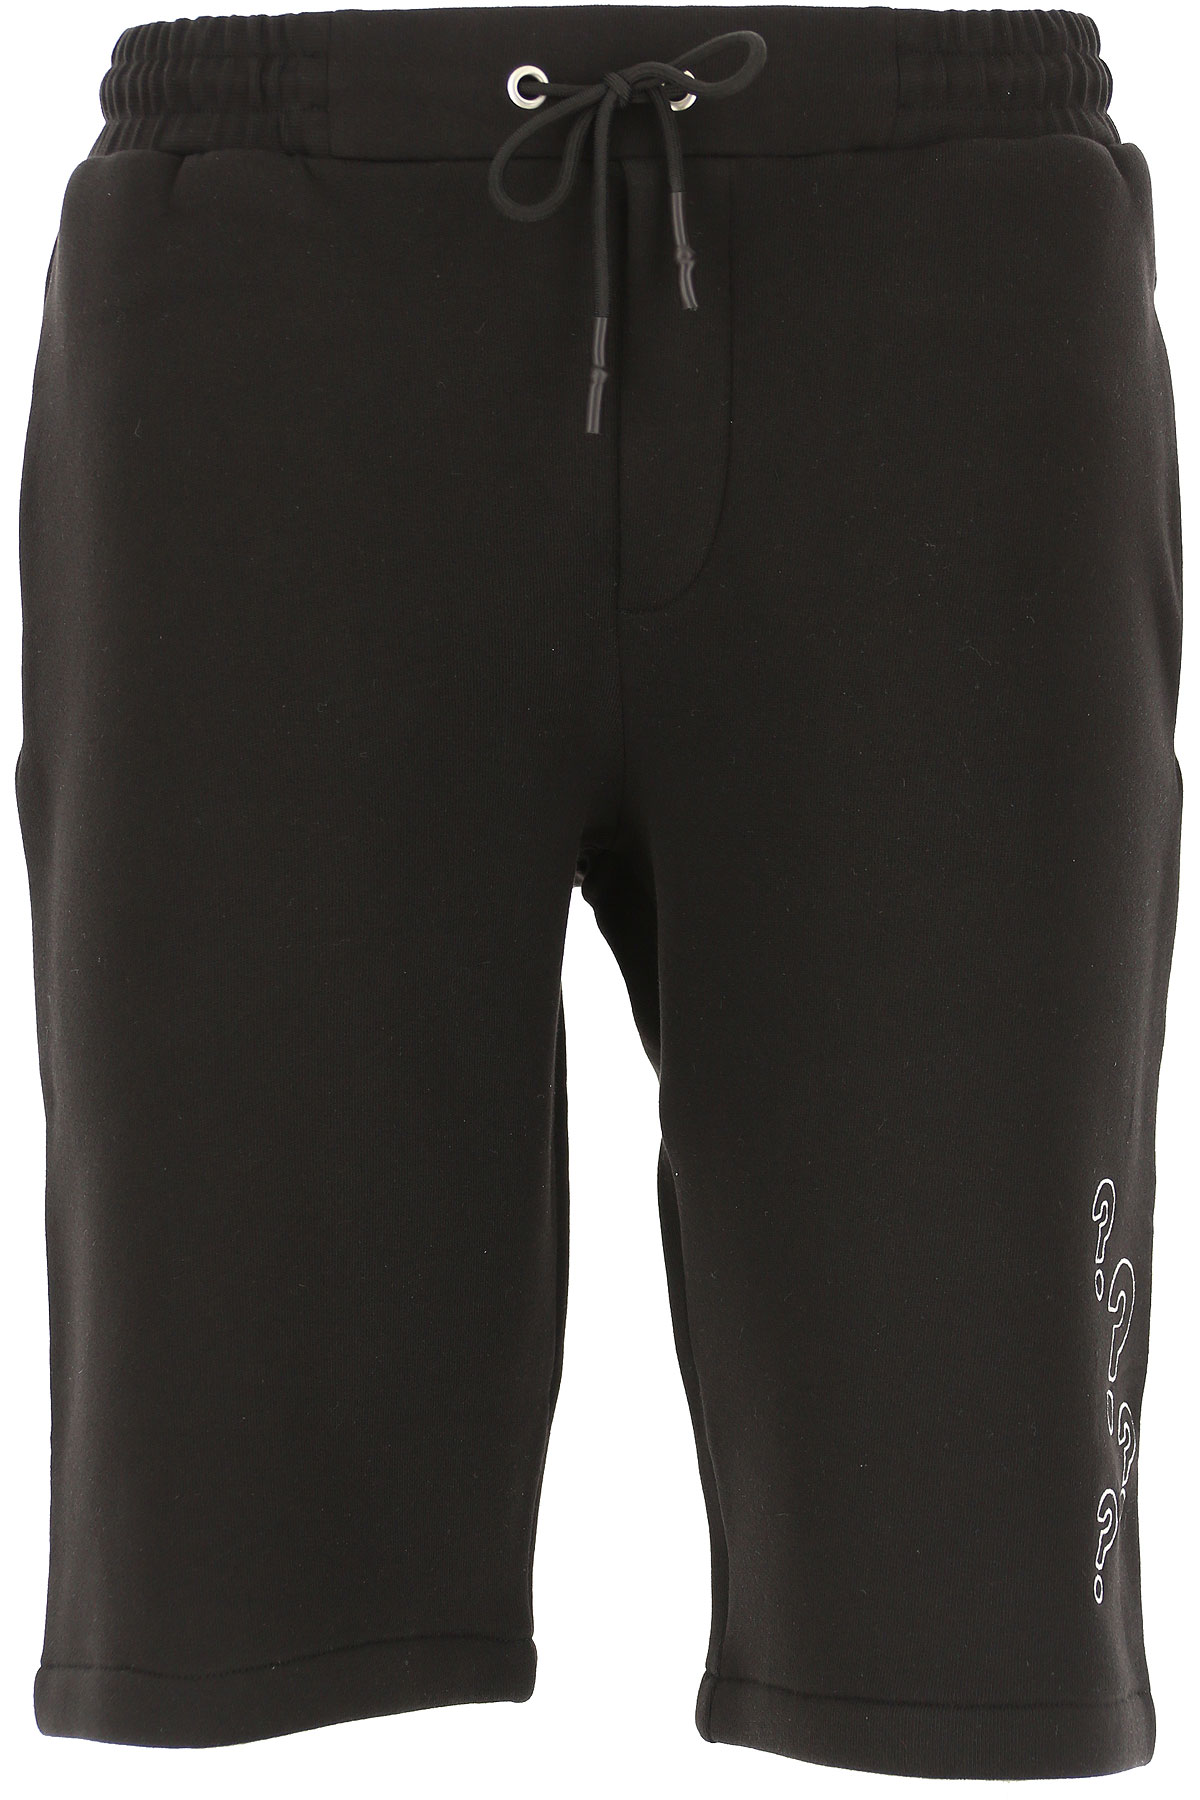 Alexander McQueen McQ Shorts for Men On Sale, Black, Cotton, 2019, L M S XL